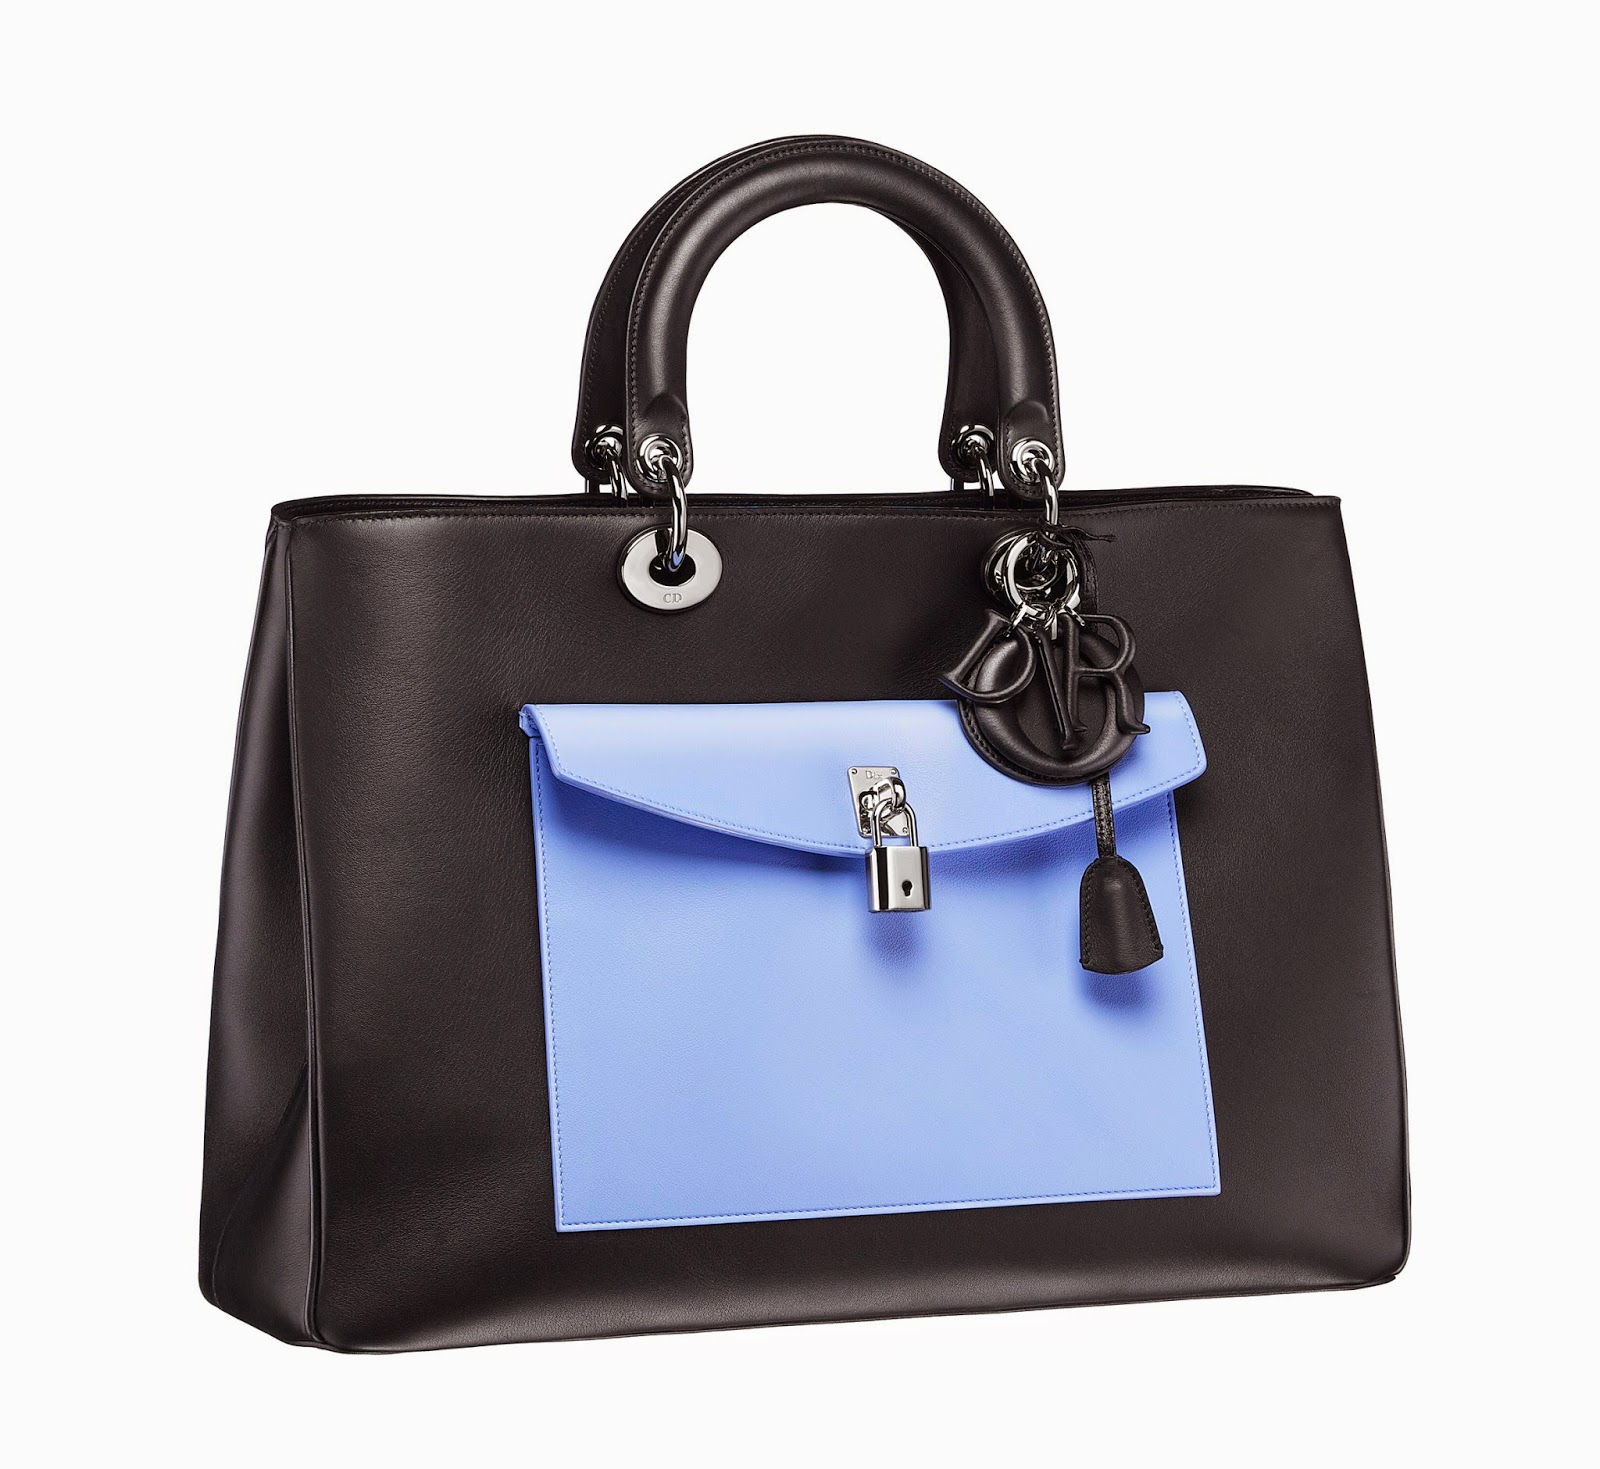 Dior's Patchpocket Bag for Winter 2014